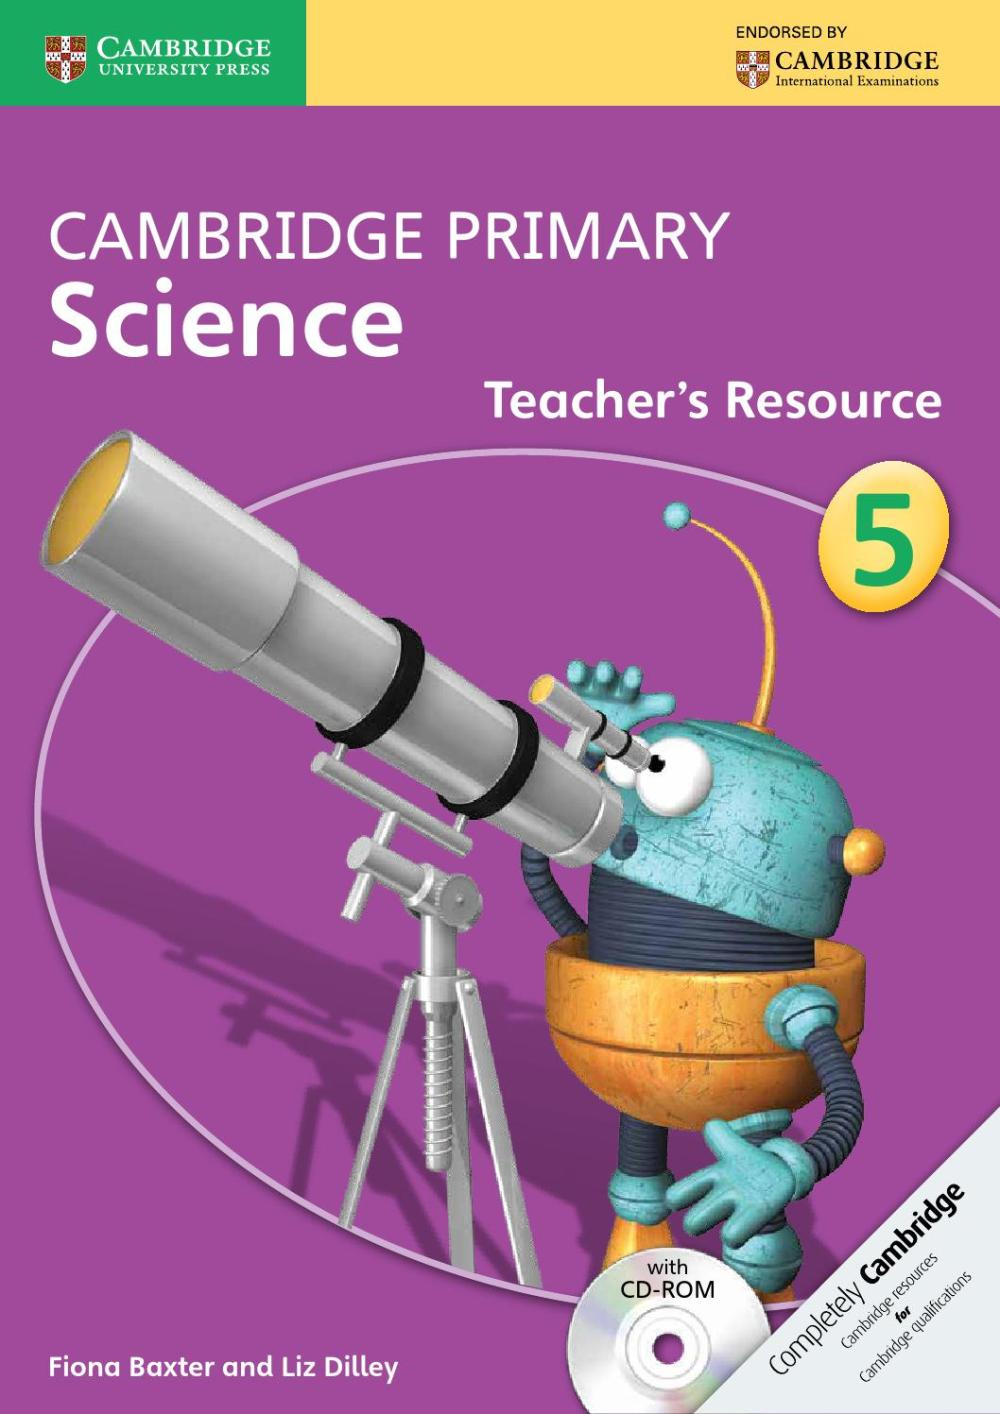 medium resolution of Cambridge Primary Science Teacher's Resource Book 5 with CD-ROM by  Cambridge University Press Education - issuu